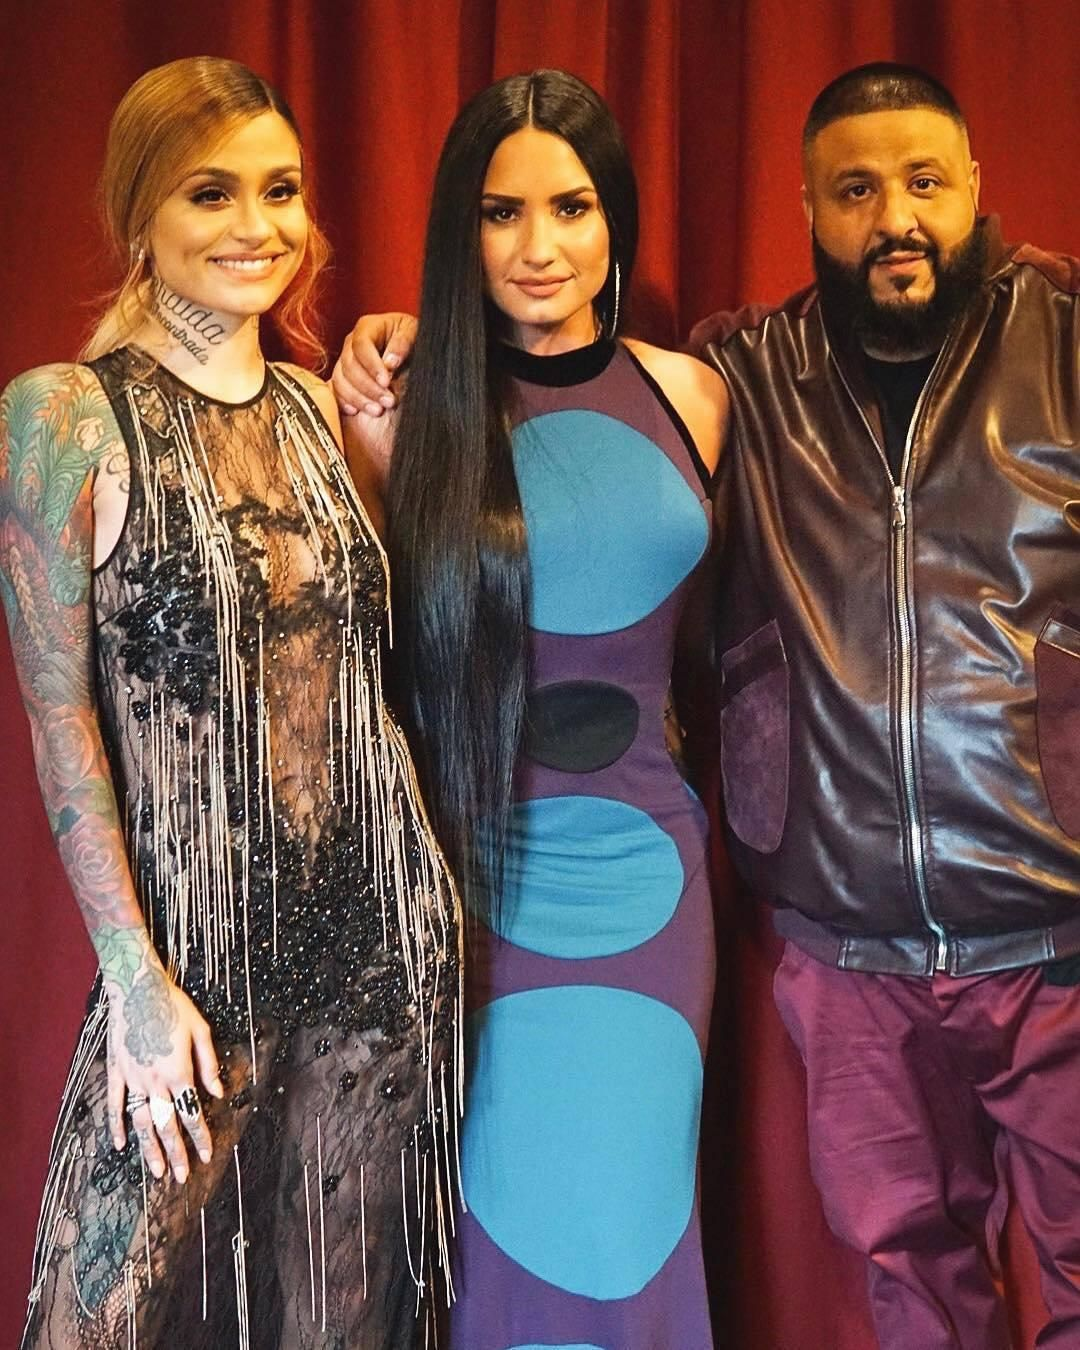 Kehlani Will Be Joining Demilovato On Her Eight Tour With Djkhaled Get